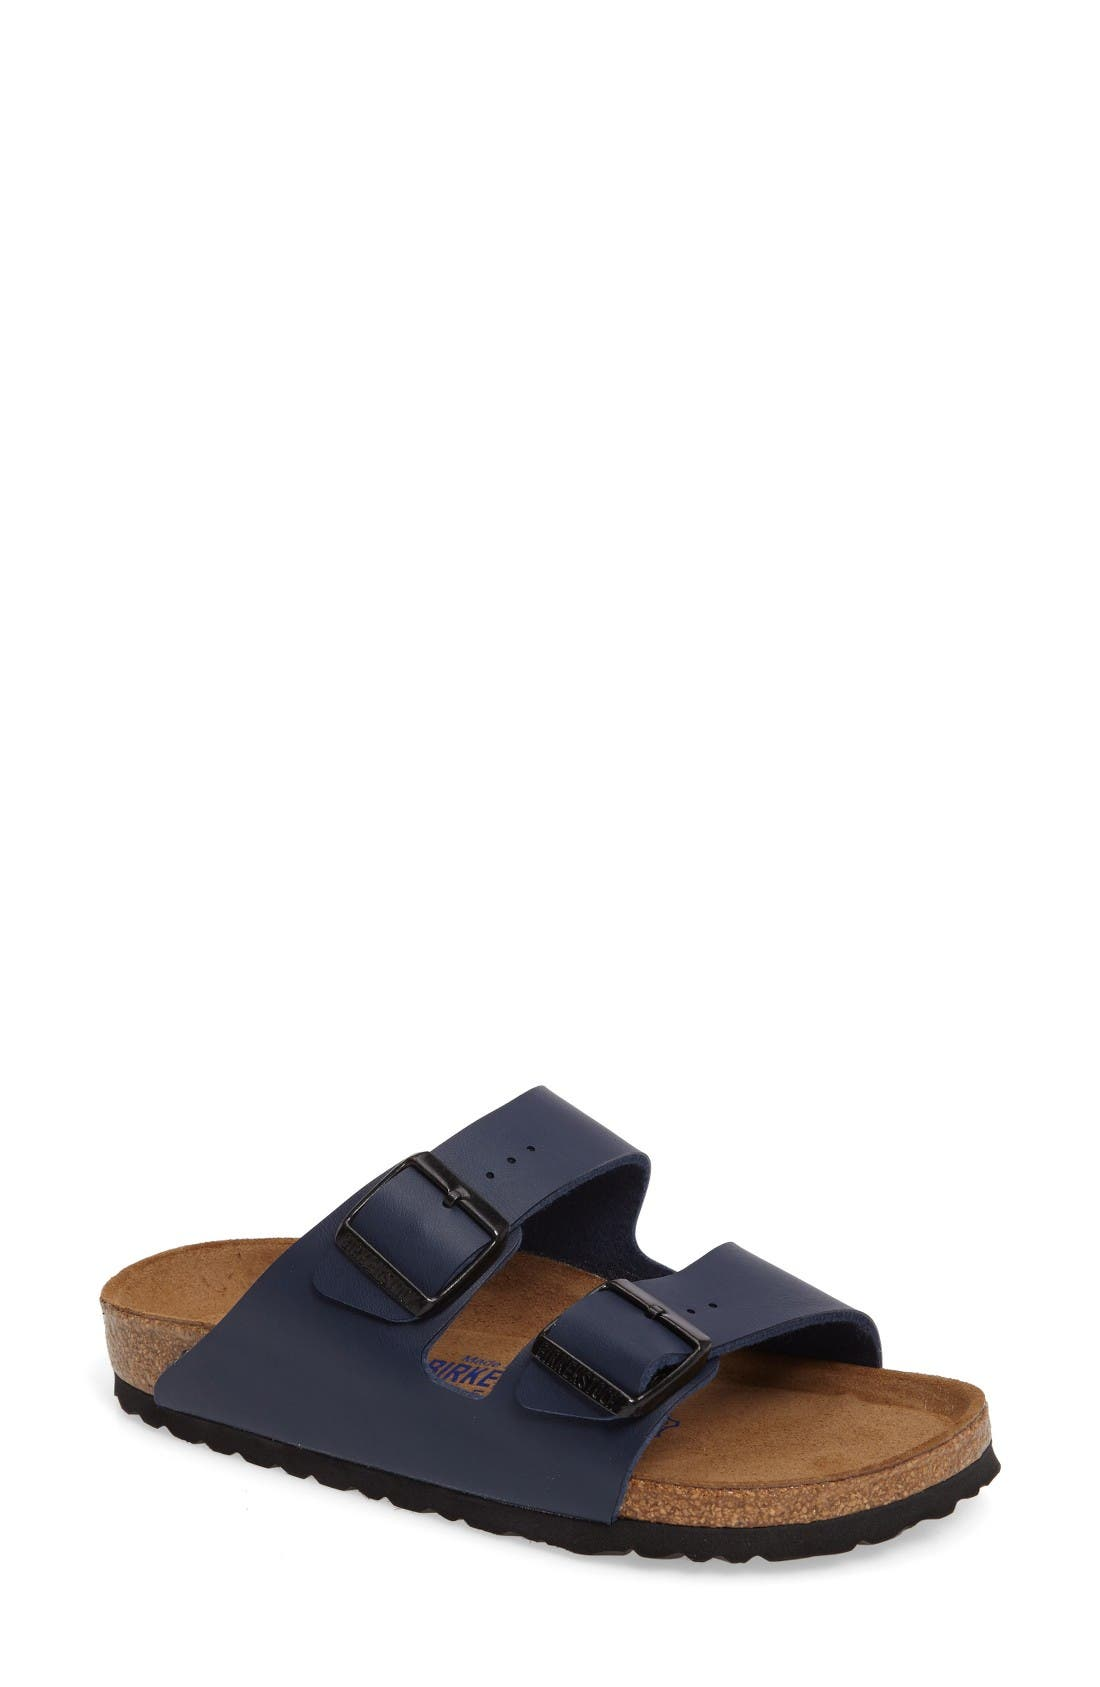 'Arizona' Soft Footbed Sandal, Main, color, Navy